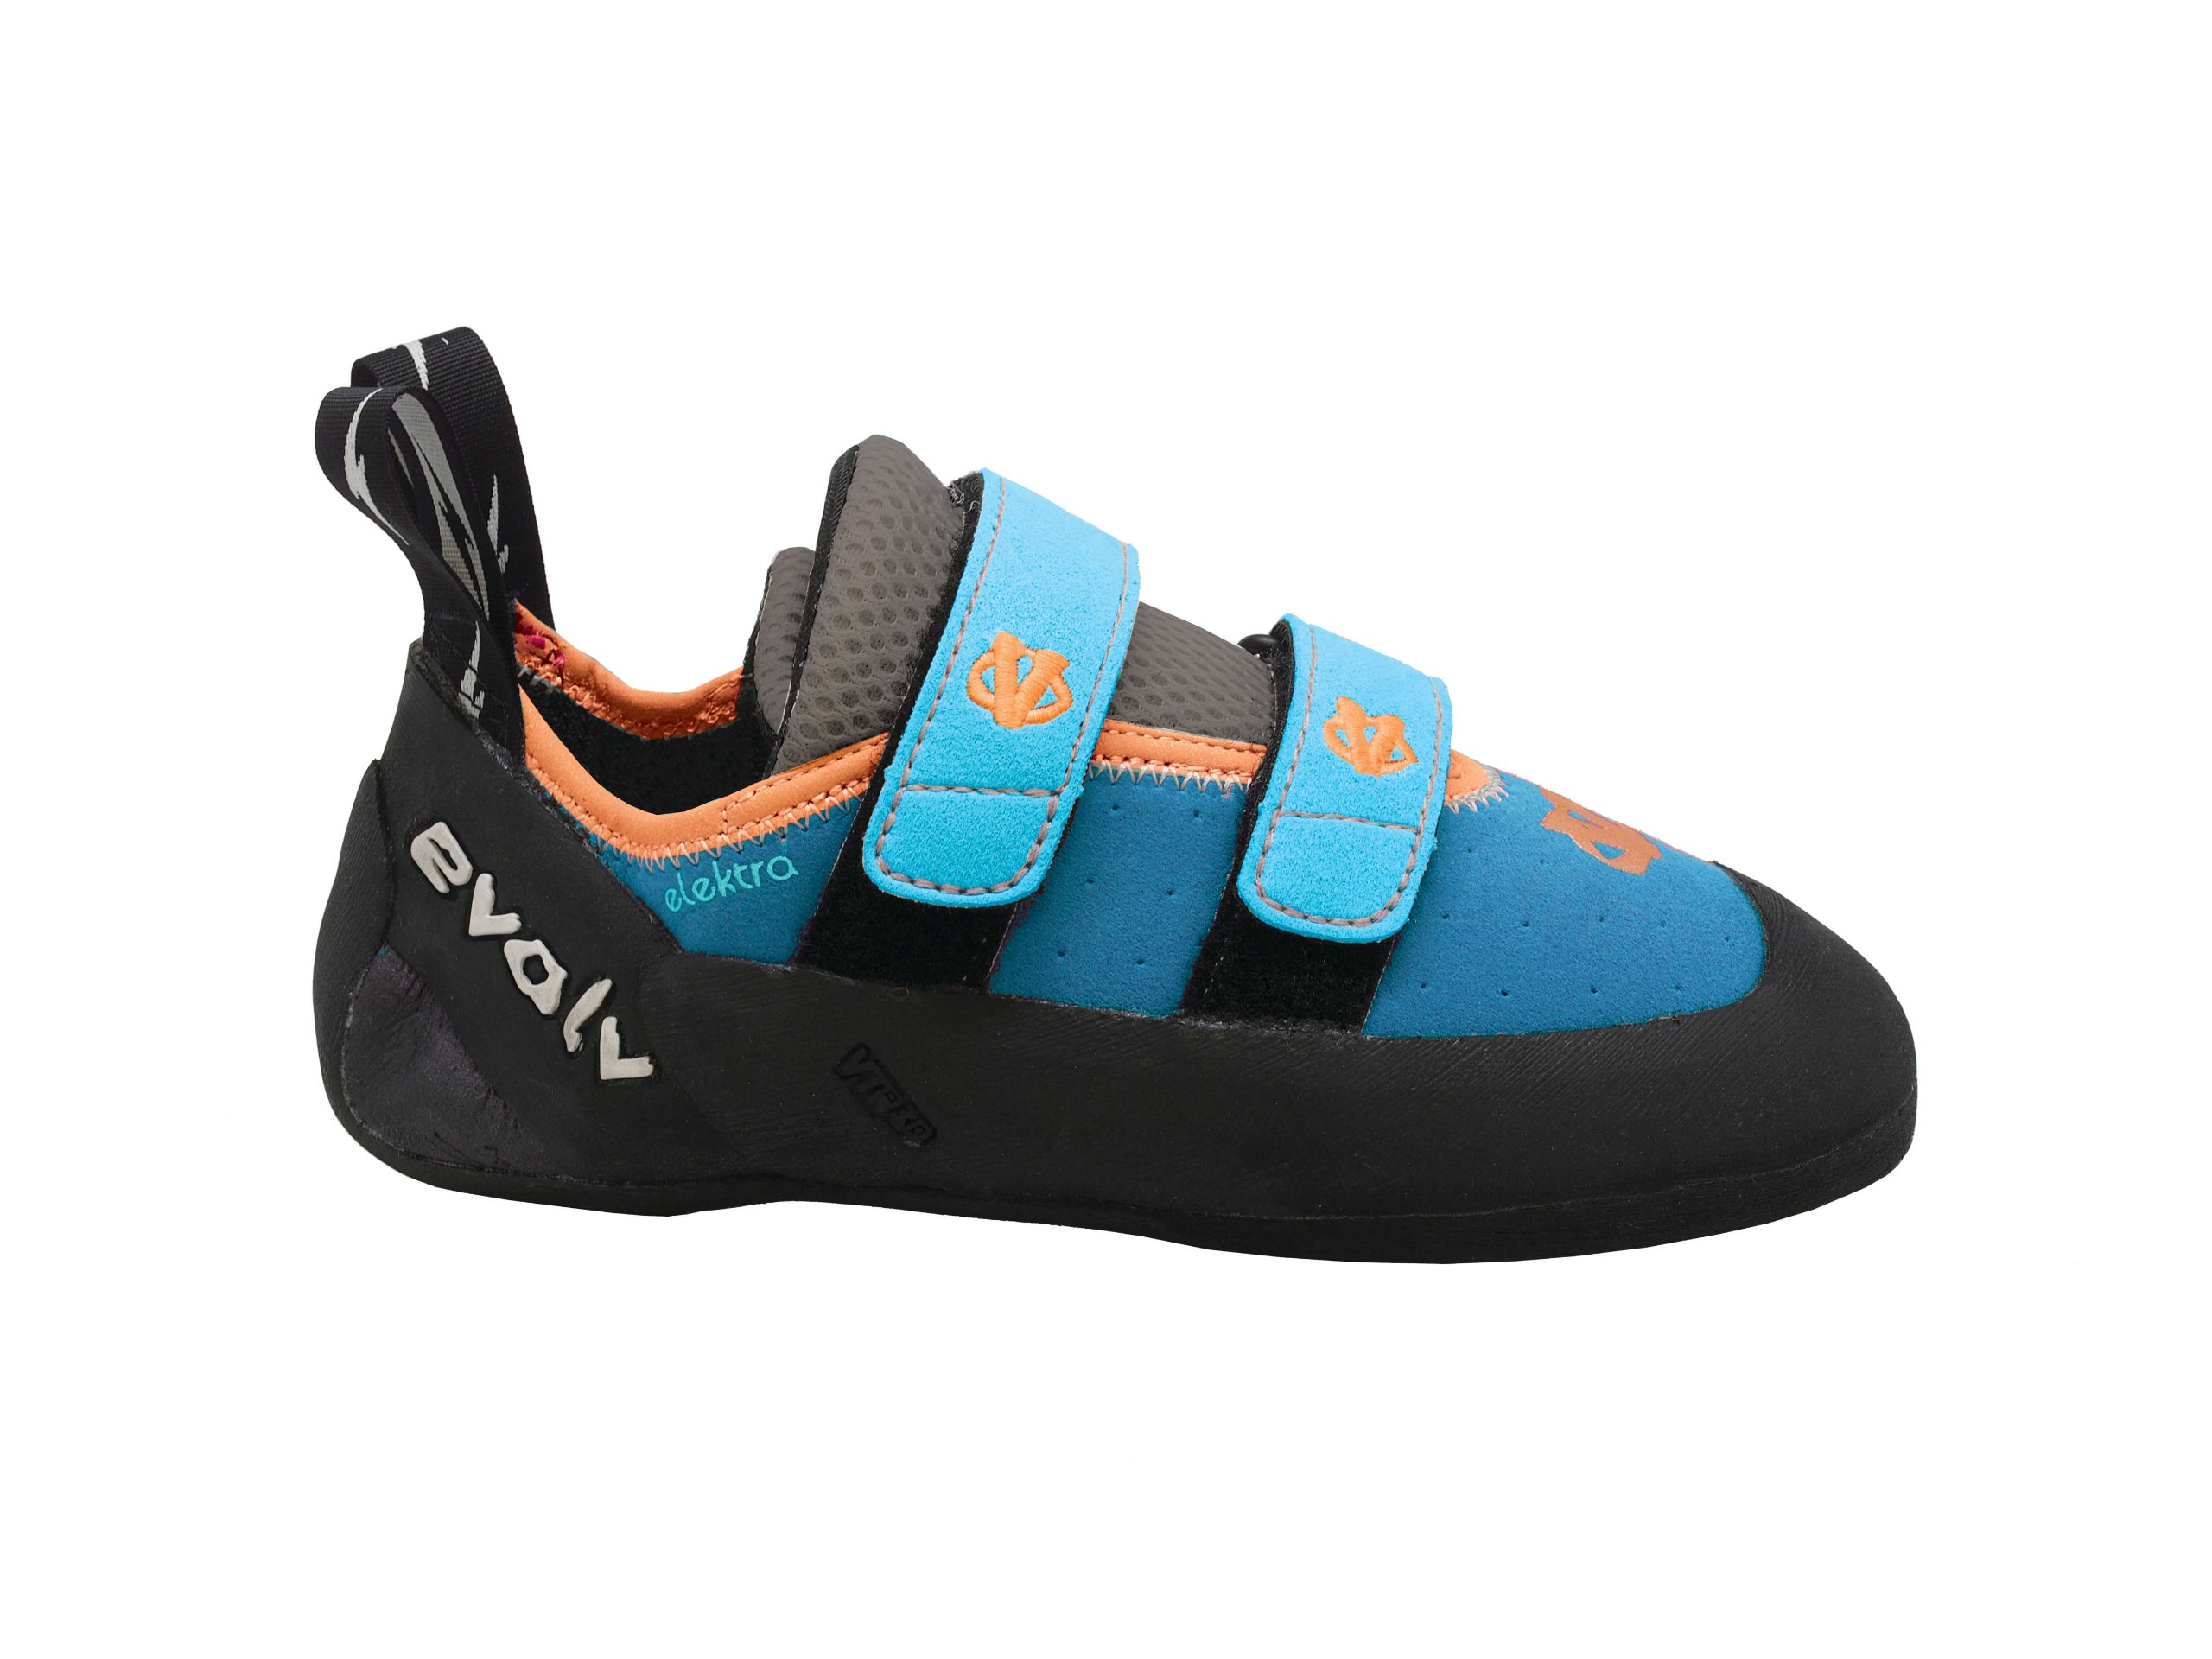 Evolv Elektra Climbing Shoe (2014) - Women's Teal 4 by Evolv